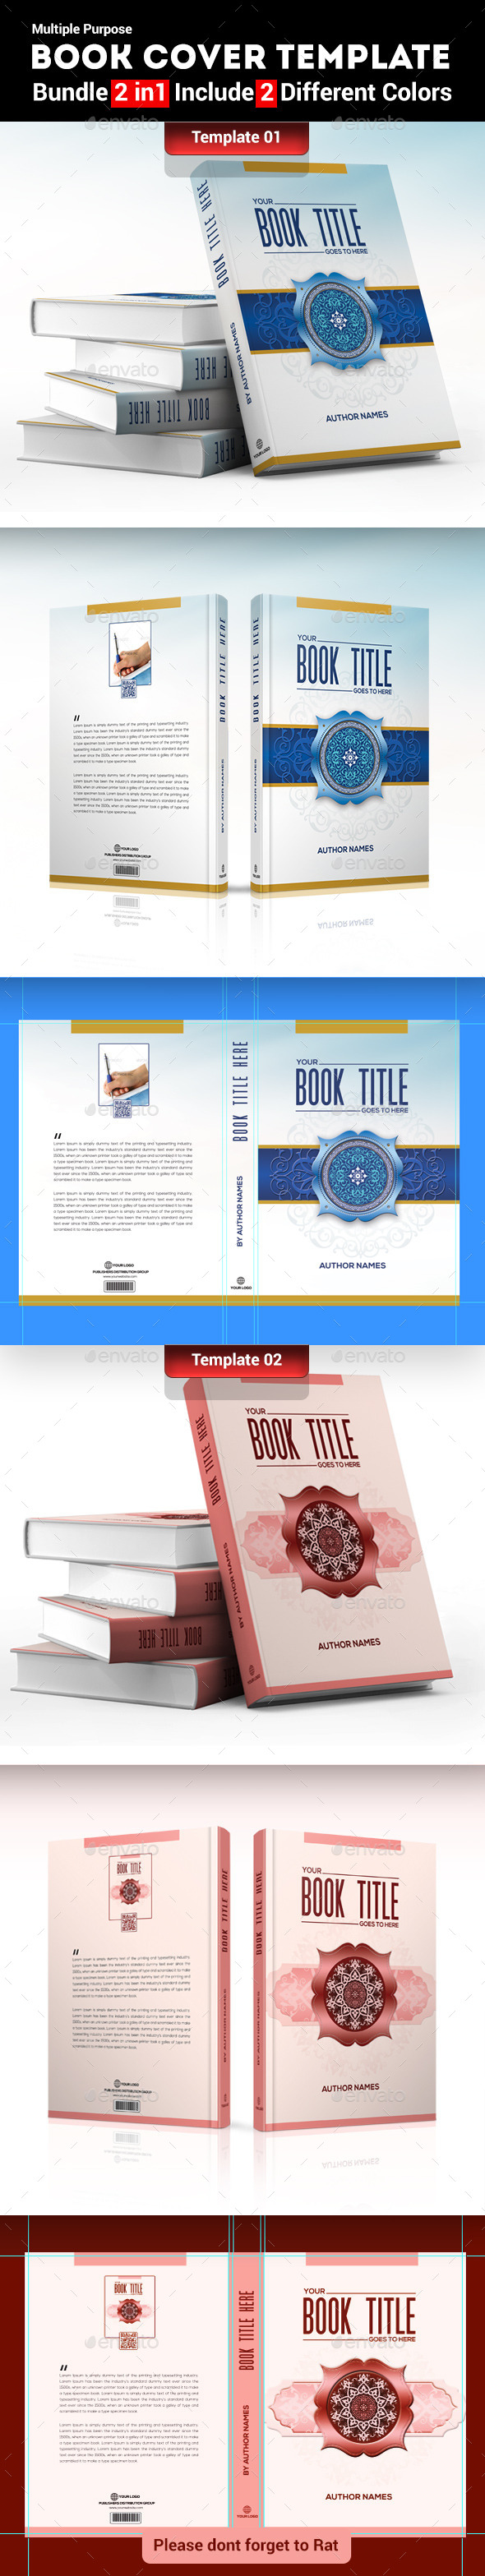 book release flyer templates photoshop